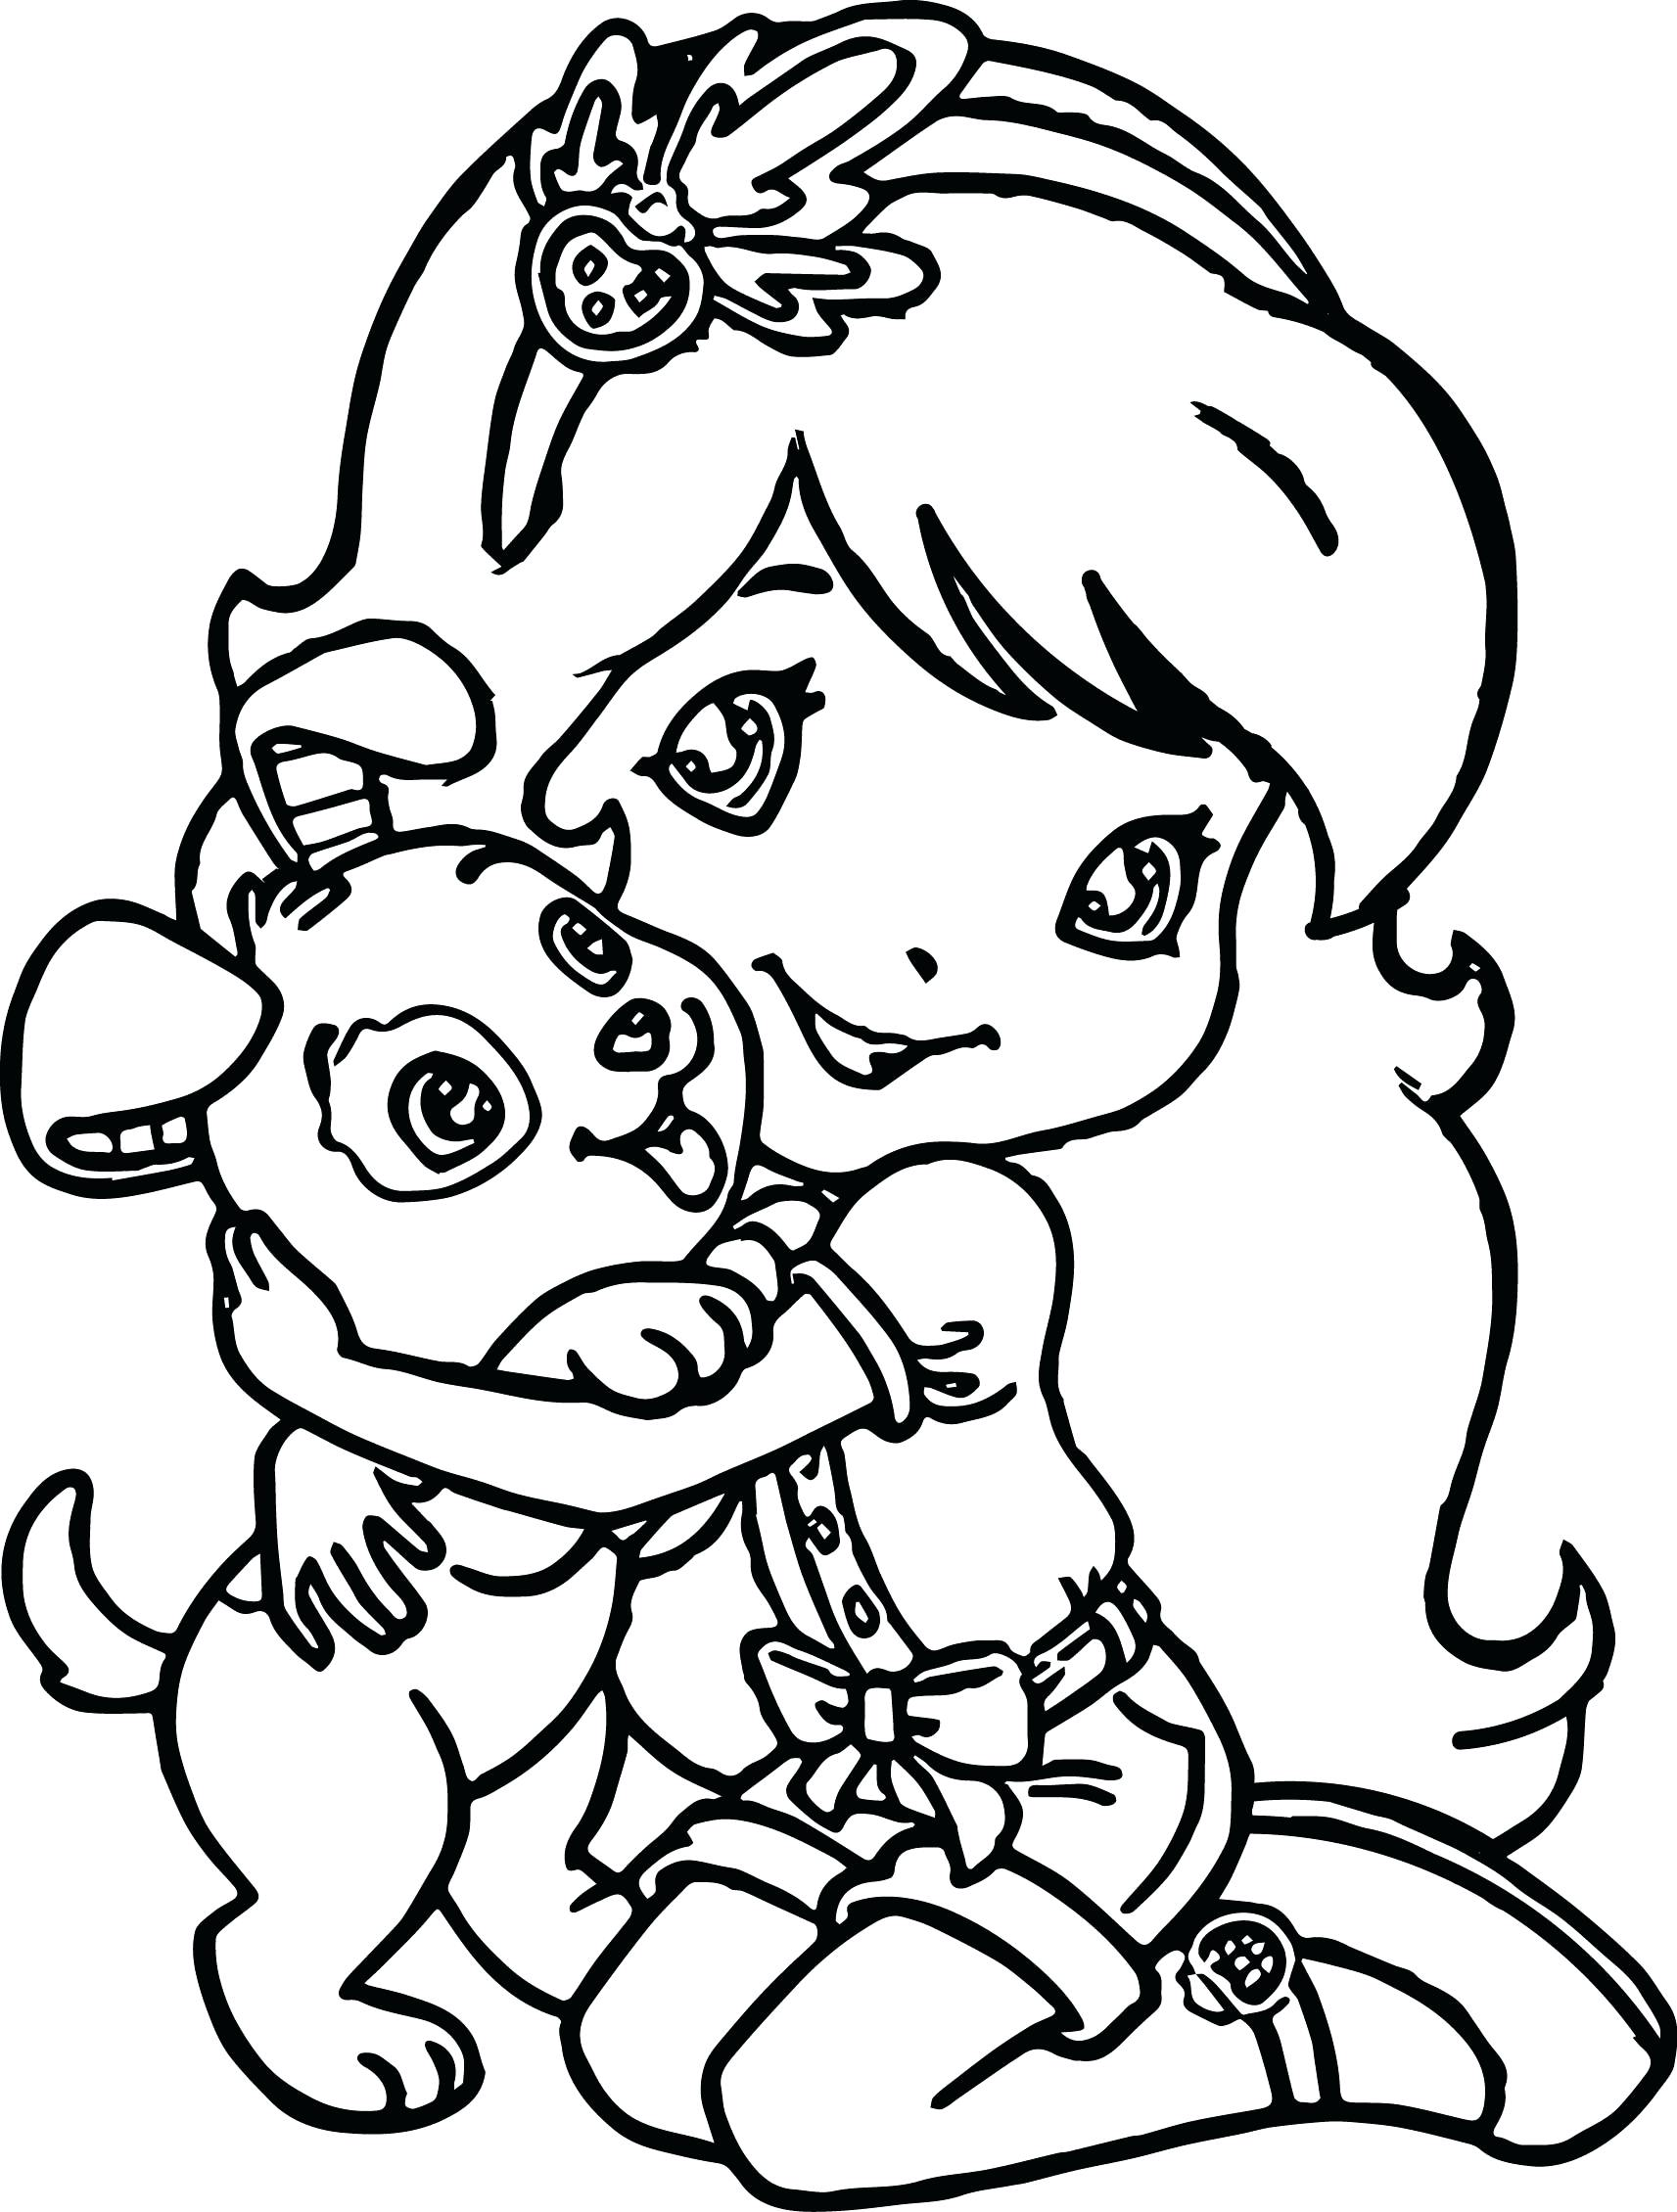 Cute Girly Coloring Pages At Getcolorings